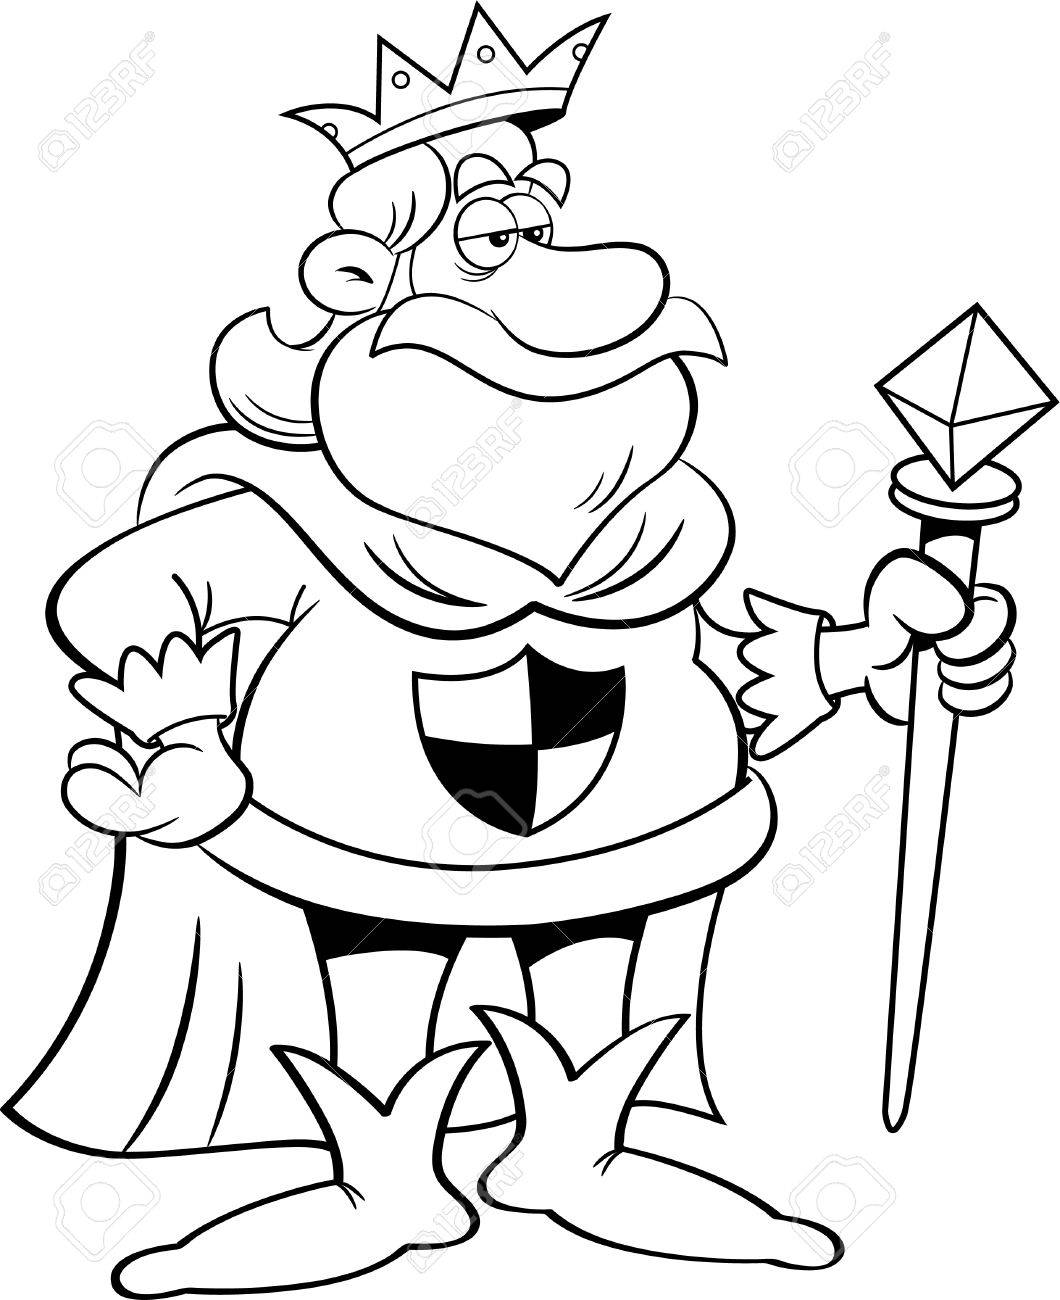 Black and white illustration of a king holding a scepter..